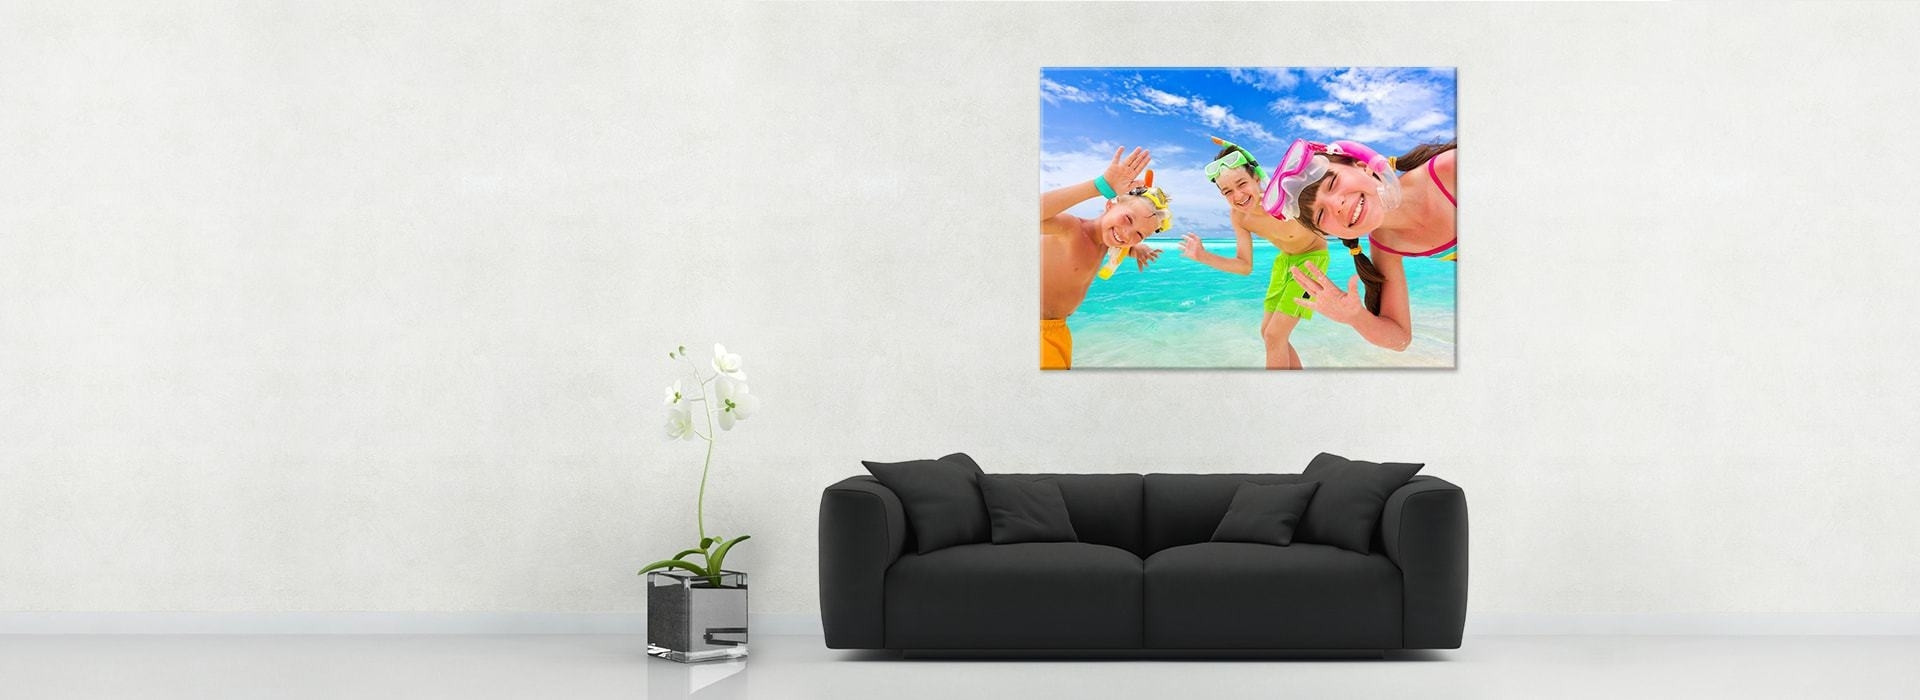 Canvas Prints | Save On Canvas Photo Prints | Canvas Factory Within Recent Geelong Canvas Wall Art (View 4 of 15)